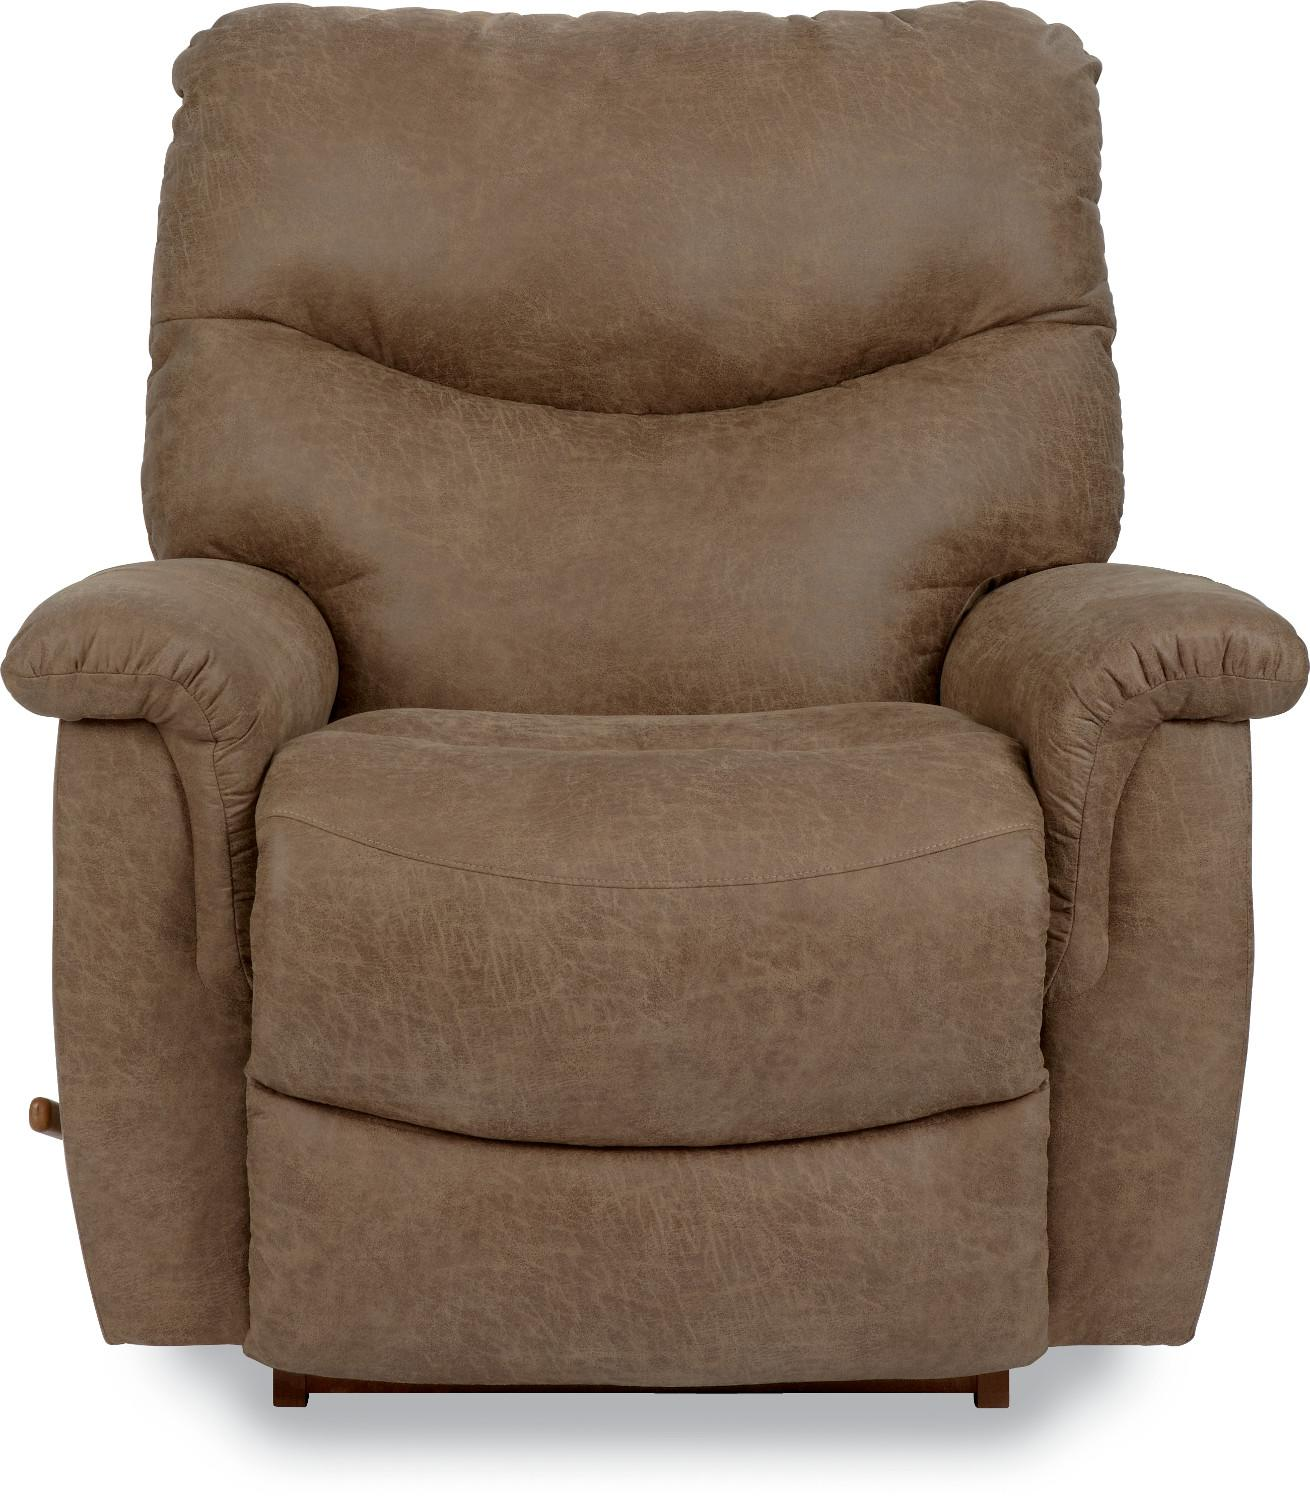 James Chair and a Half Recliner by La-Z-Boy at Godby Home Furnishings